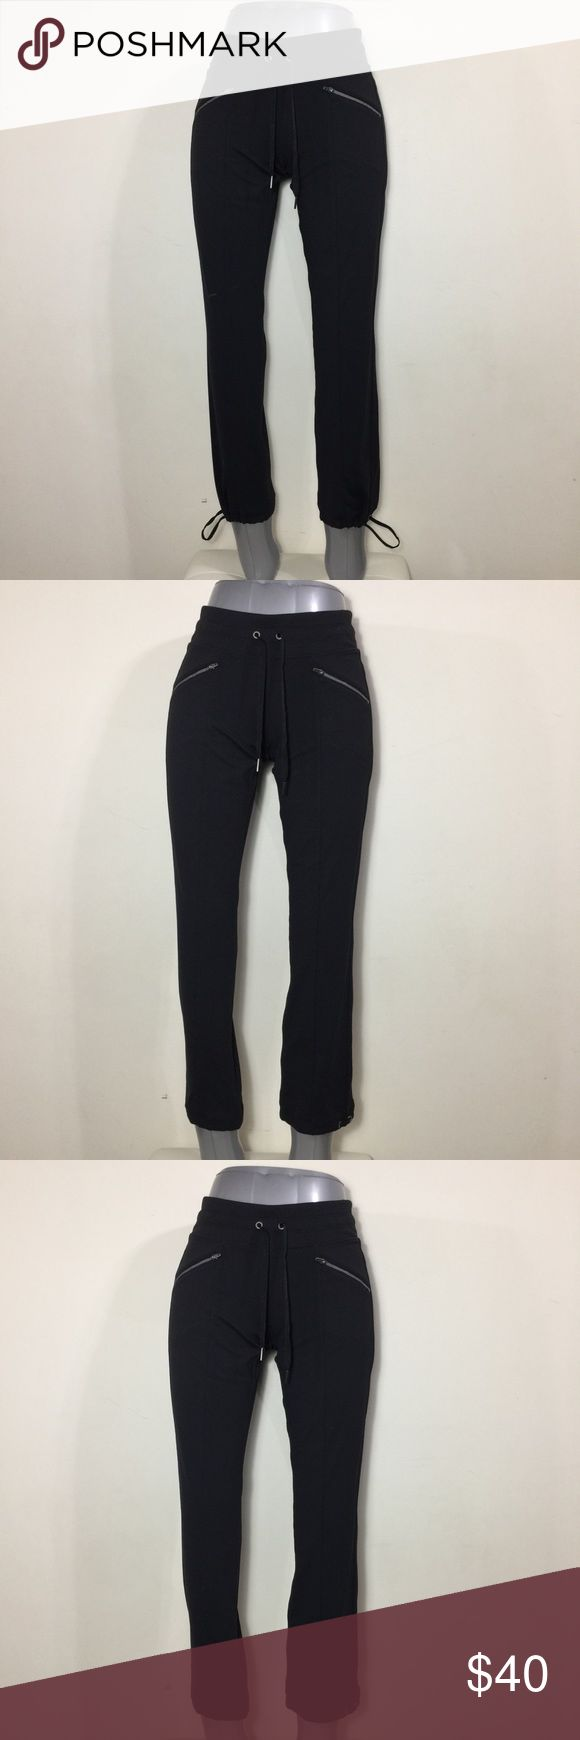 NWT Athleta Women's Yoga Pant Metro Slouch Sz XS Very soft, stretchy material with strings at hem. New with tags! Athleta Pants Track Pants & Joggers